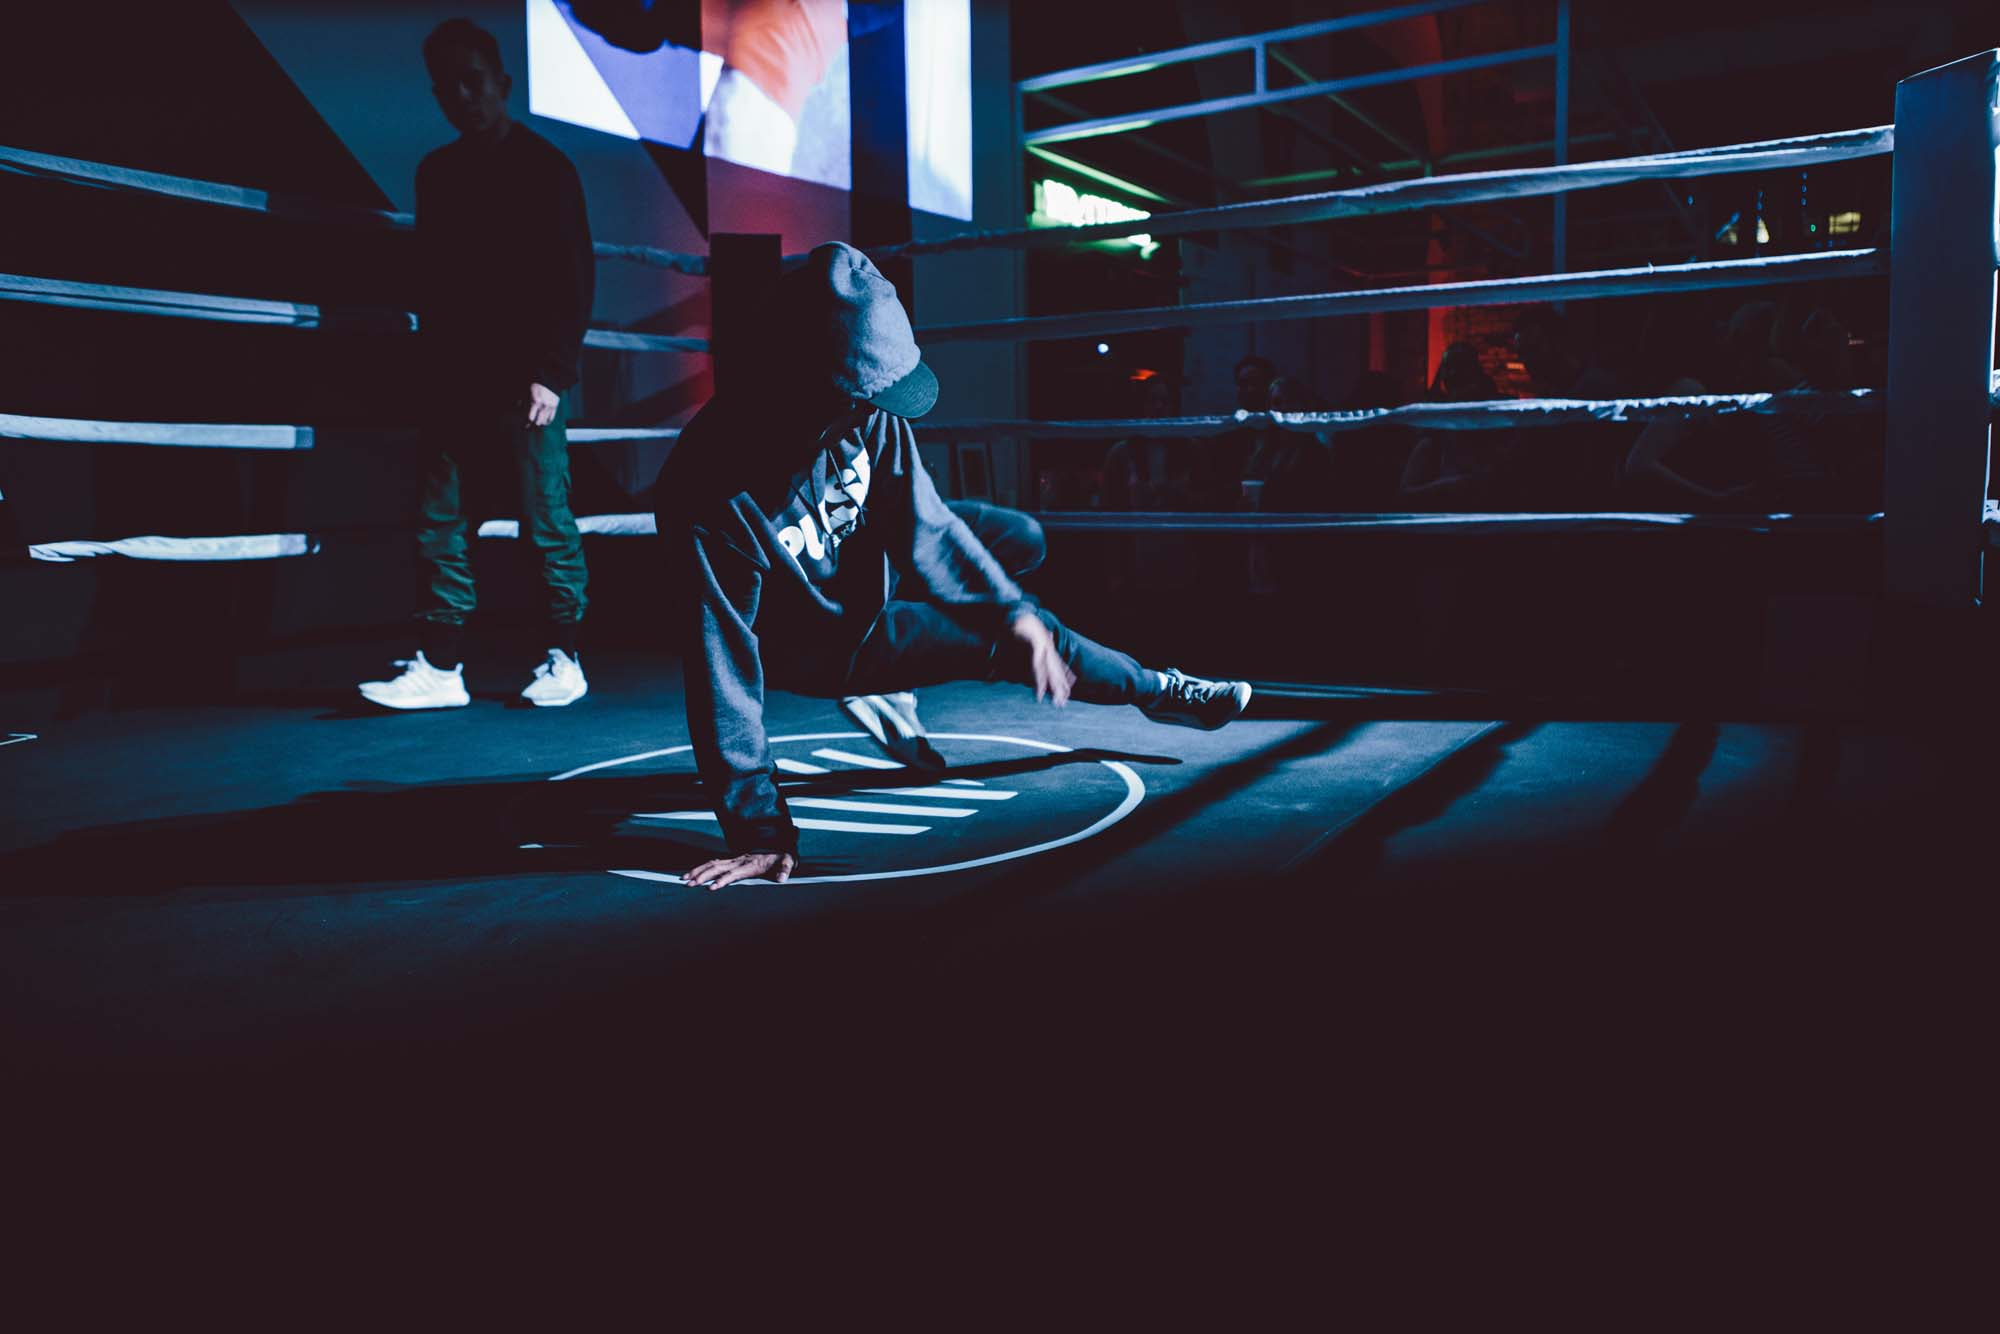 undrcard_boxing_studio_calgary_grand_opening_party20170120_0055.jpg